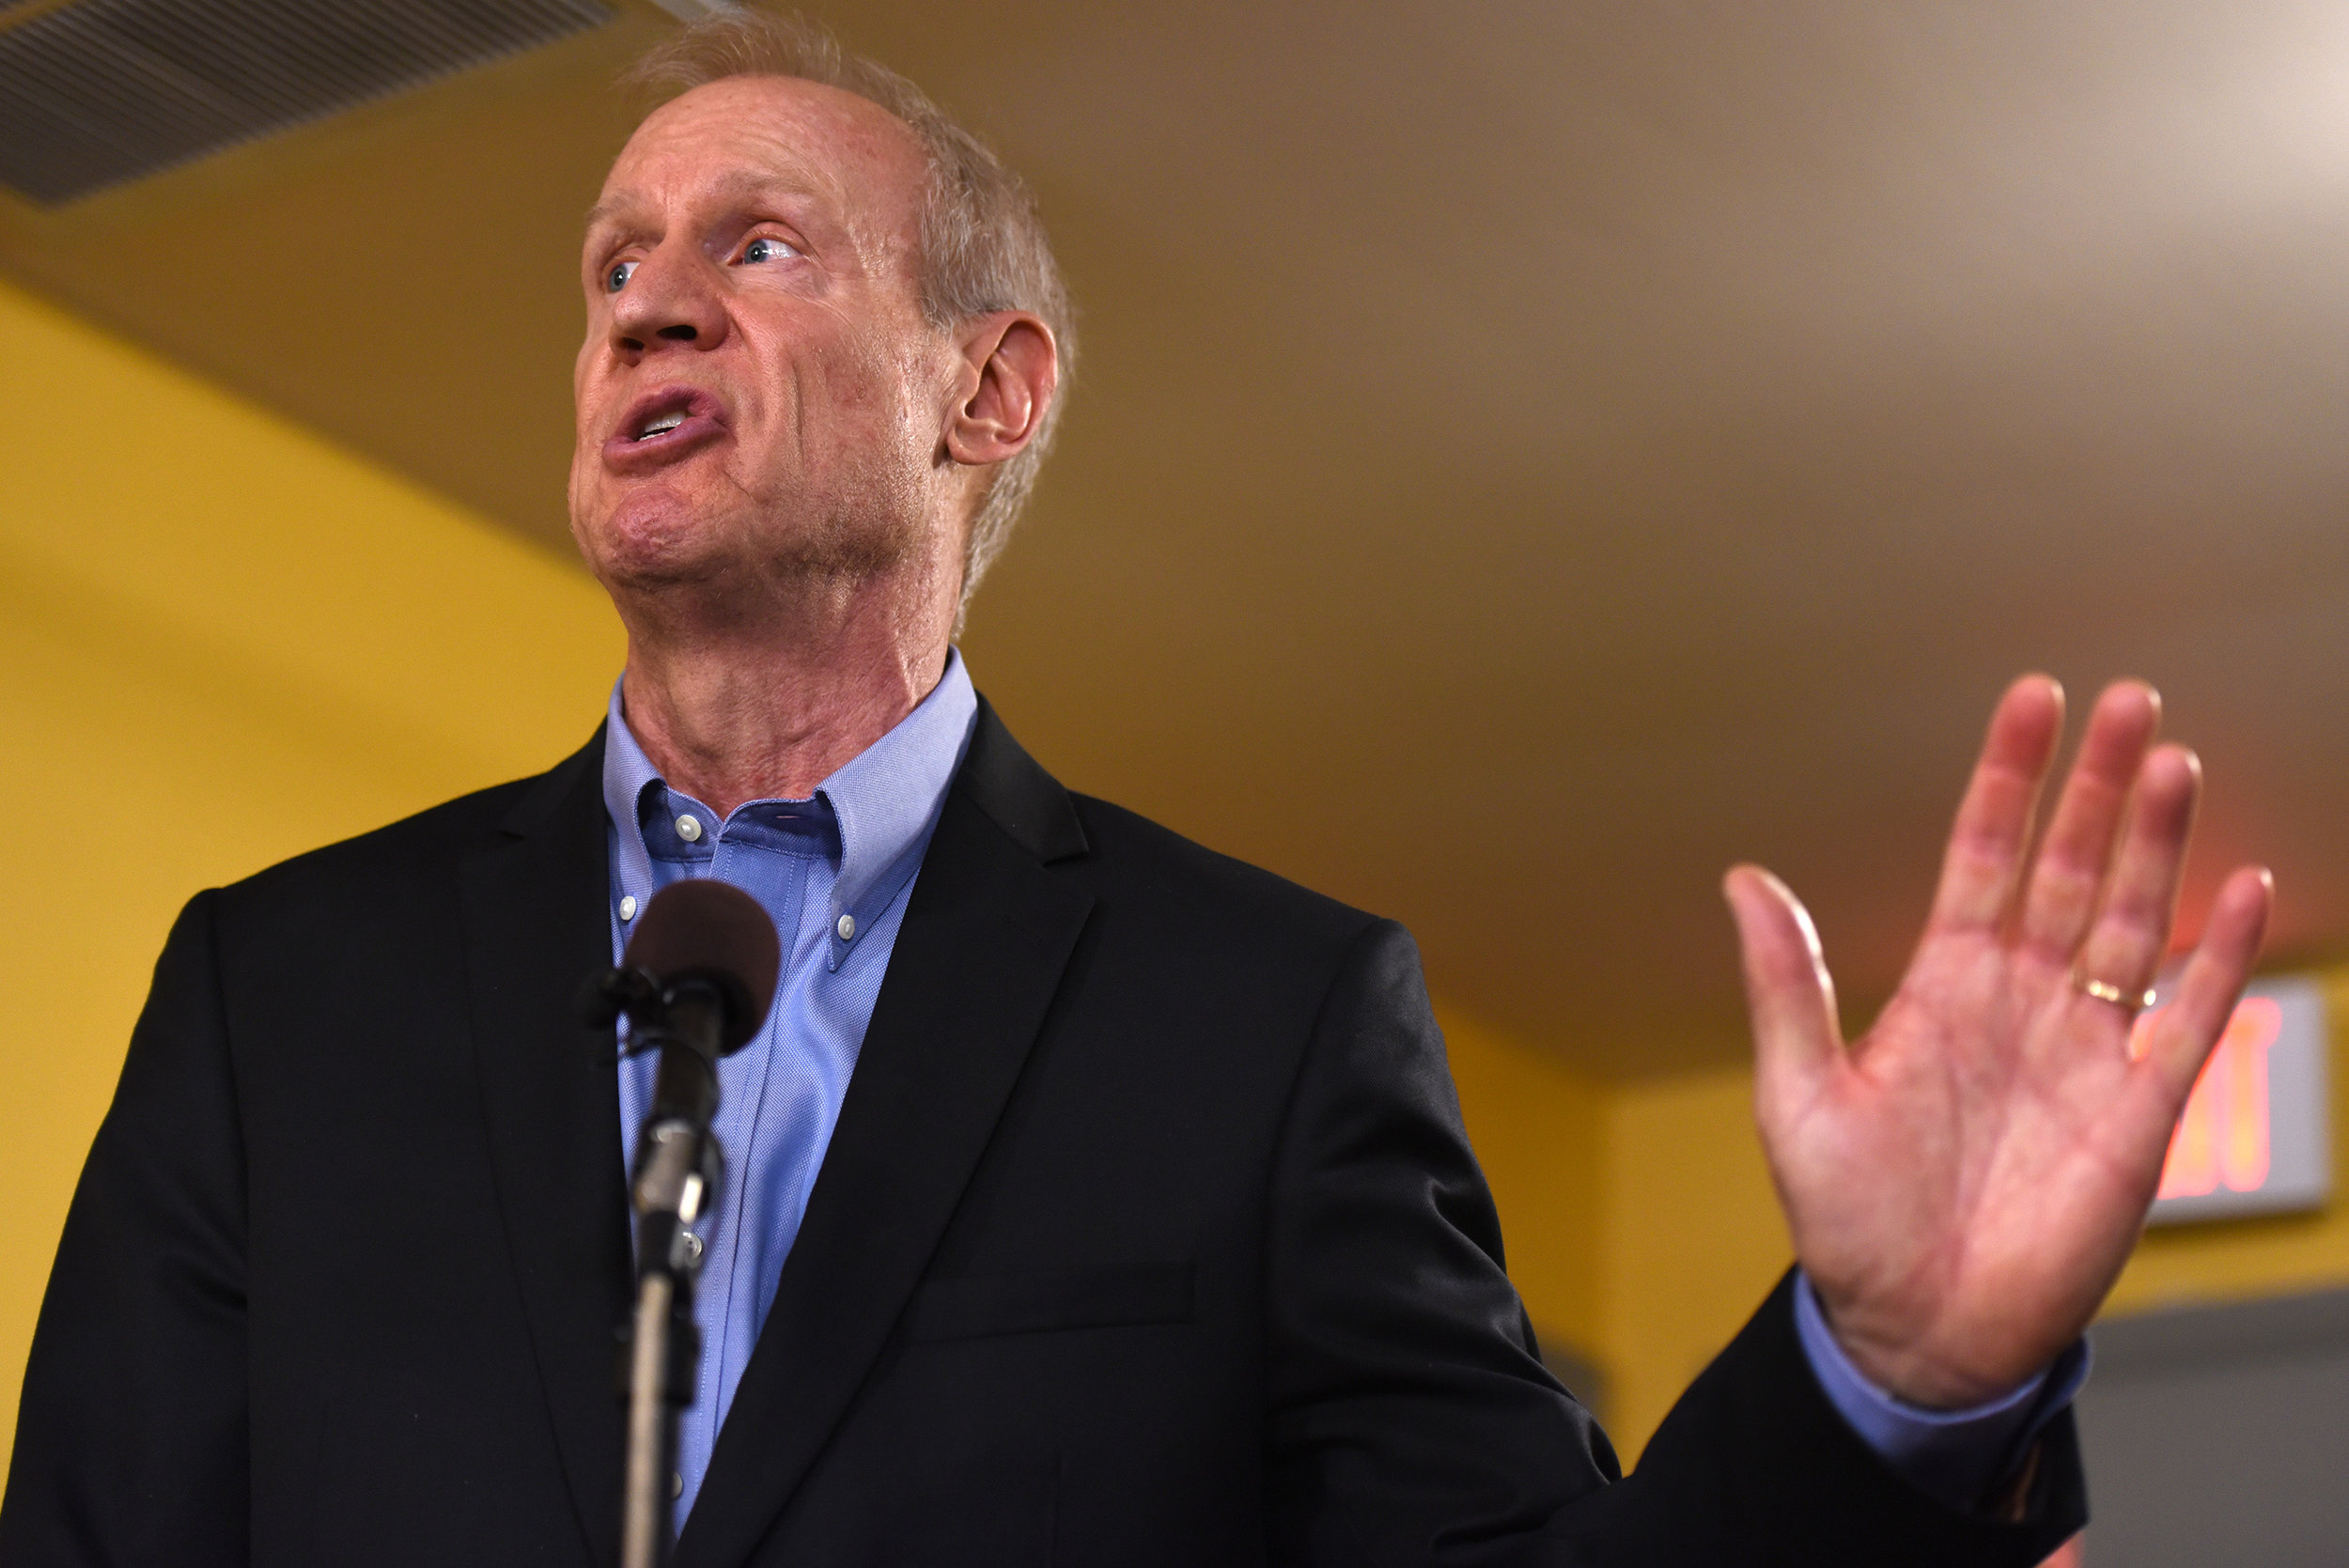 Illinois Governor Bruce Rauner speaks during a news conference, Wednesday, July 5, 2017, in Chicago. Governor Rauner vetoed on Tuesday a package of legislation that raised the income tax by a permanent 32 percent to finance a $36 billion spending plan, which would be Illinois' first budget since 2015. The Illinois House has scheduled a Thursday session which the chamber would  vote to override the veto, ending a budget stalemate that has lasted more than two years. (AP Photo/G-Jun Yam)